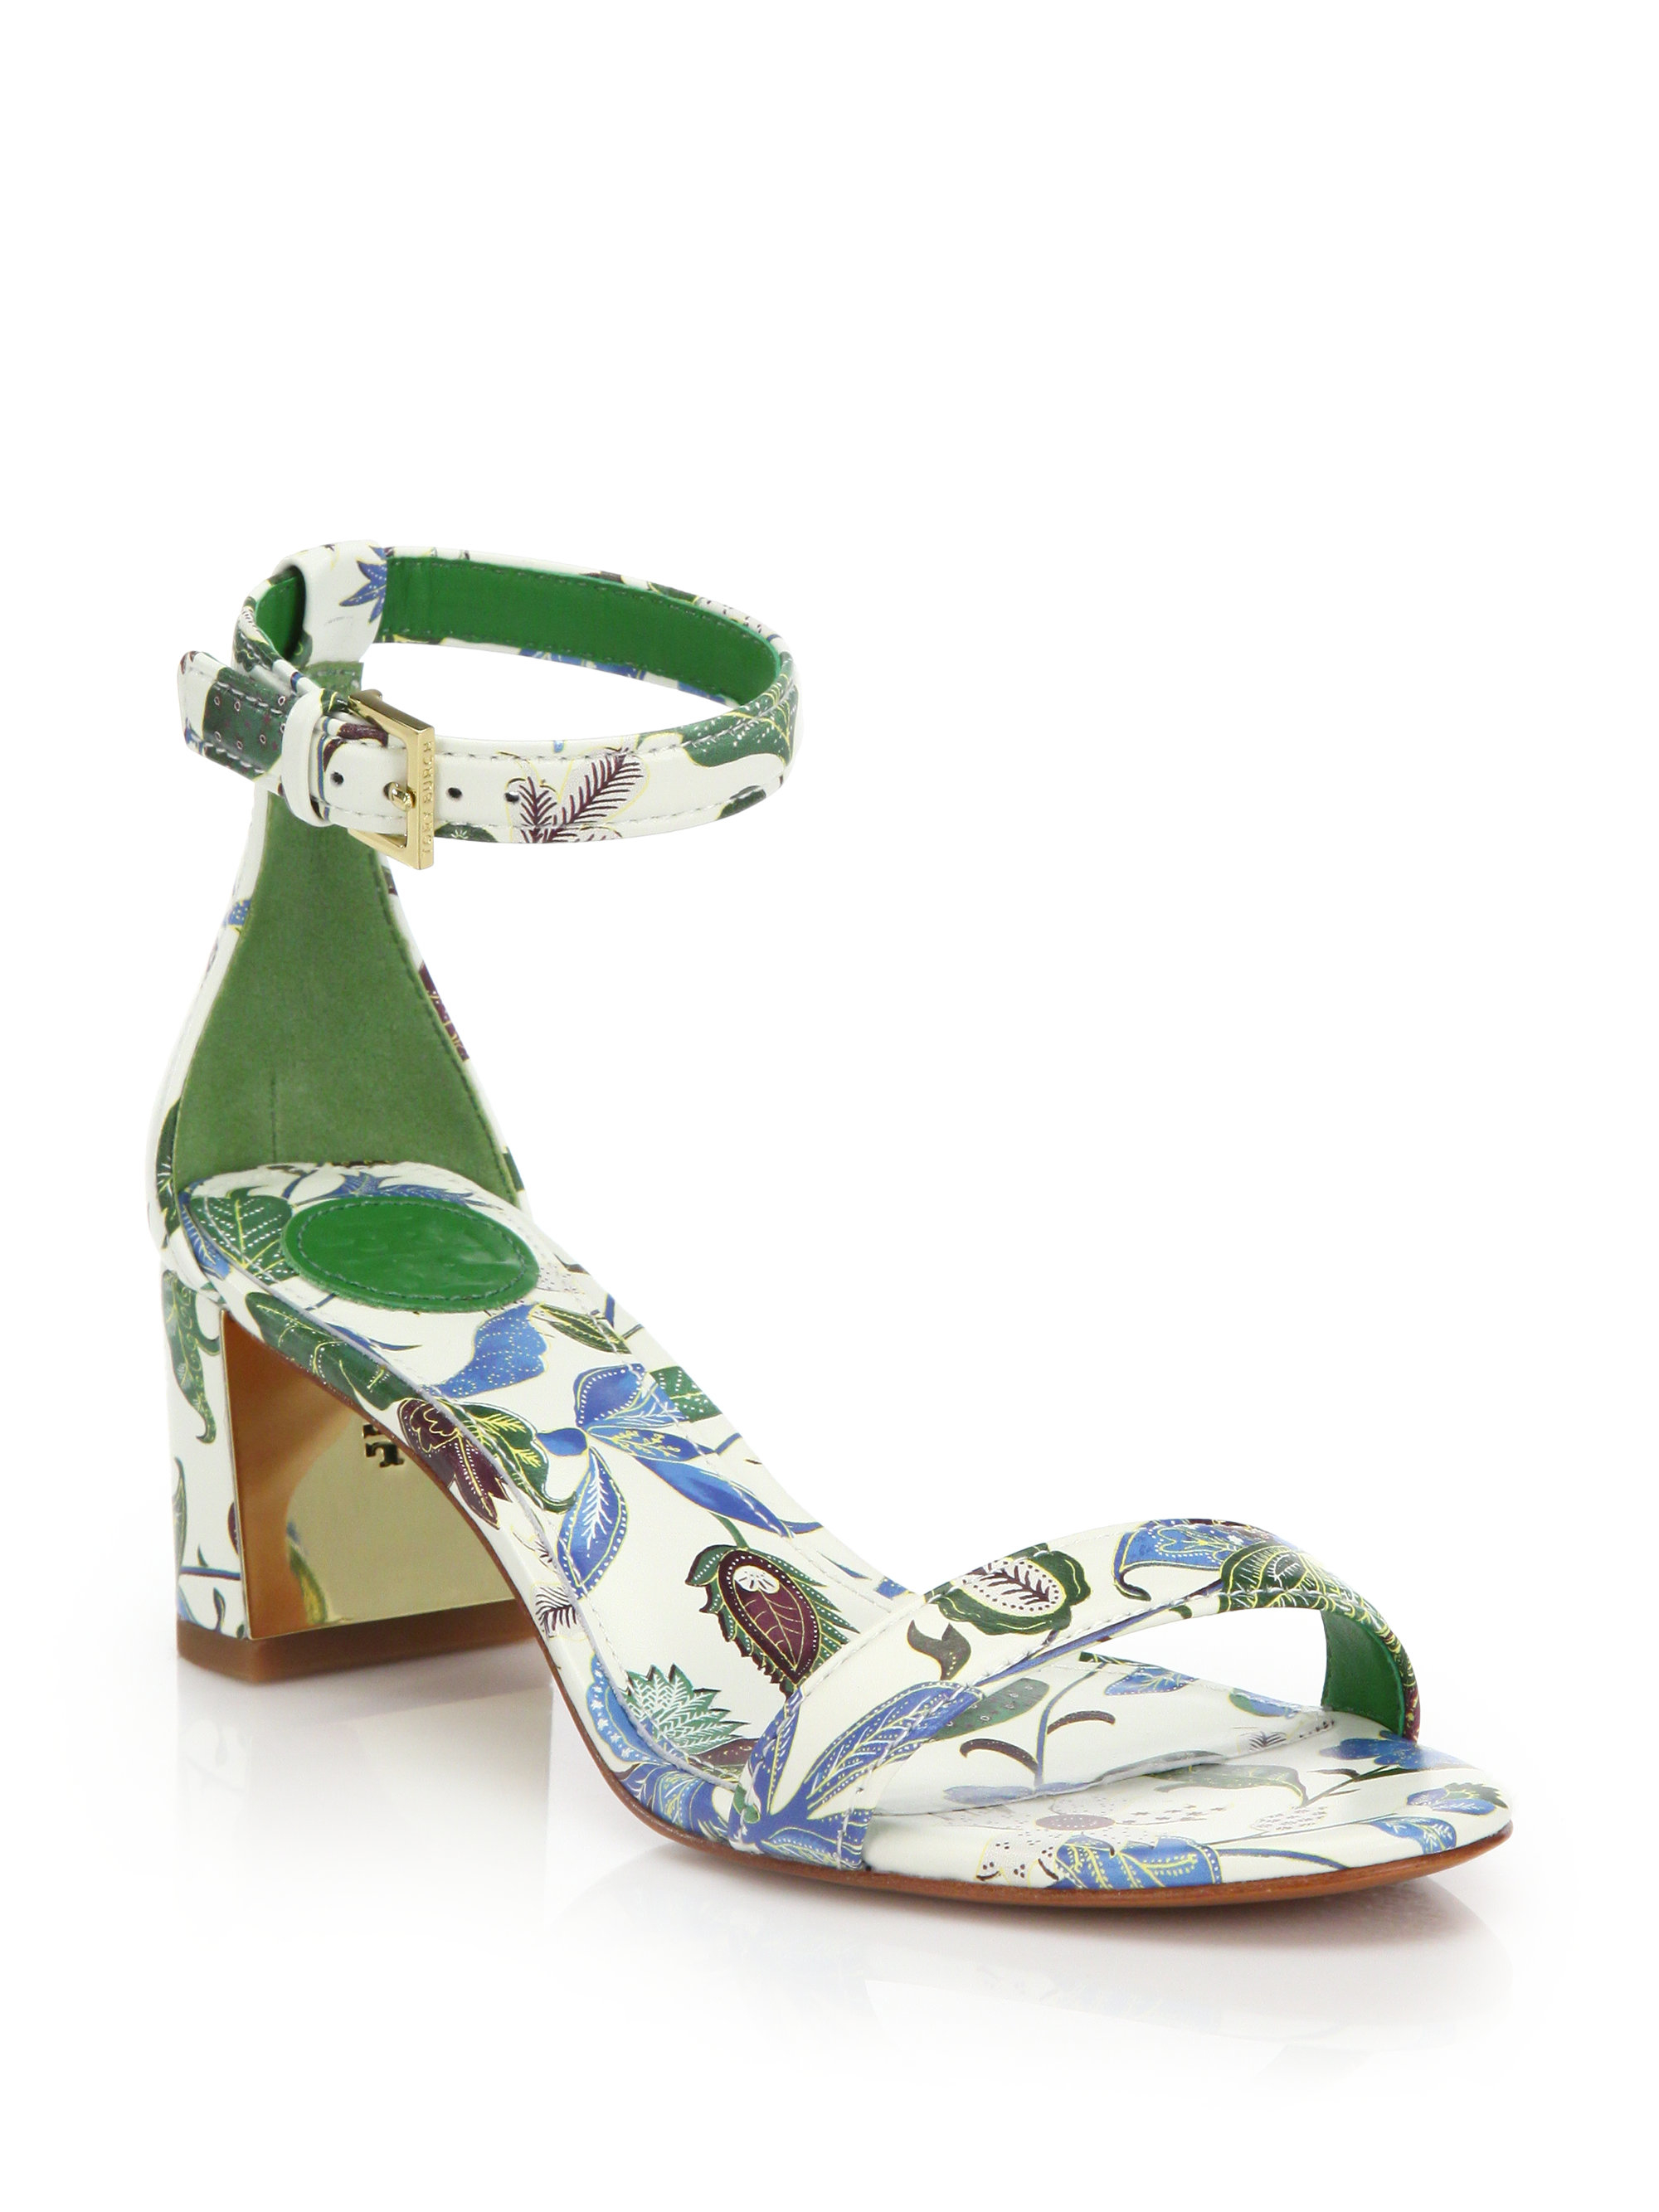 18f4c870c287 Lyst - Tory Burch Cecile Floral Leather Mid-heel Sandals